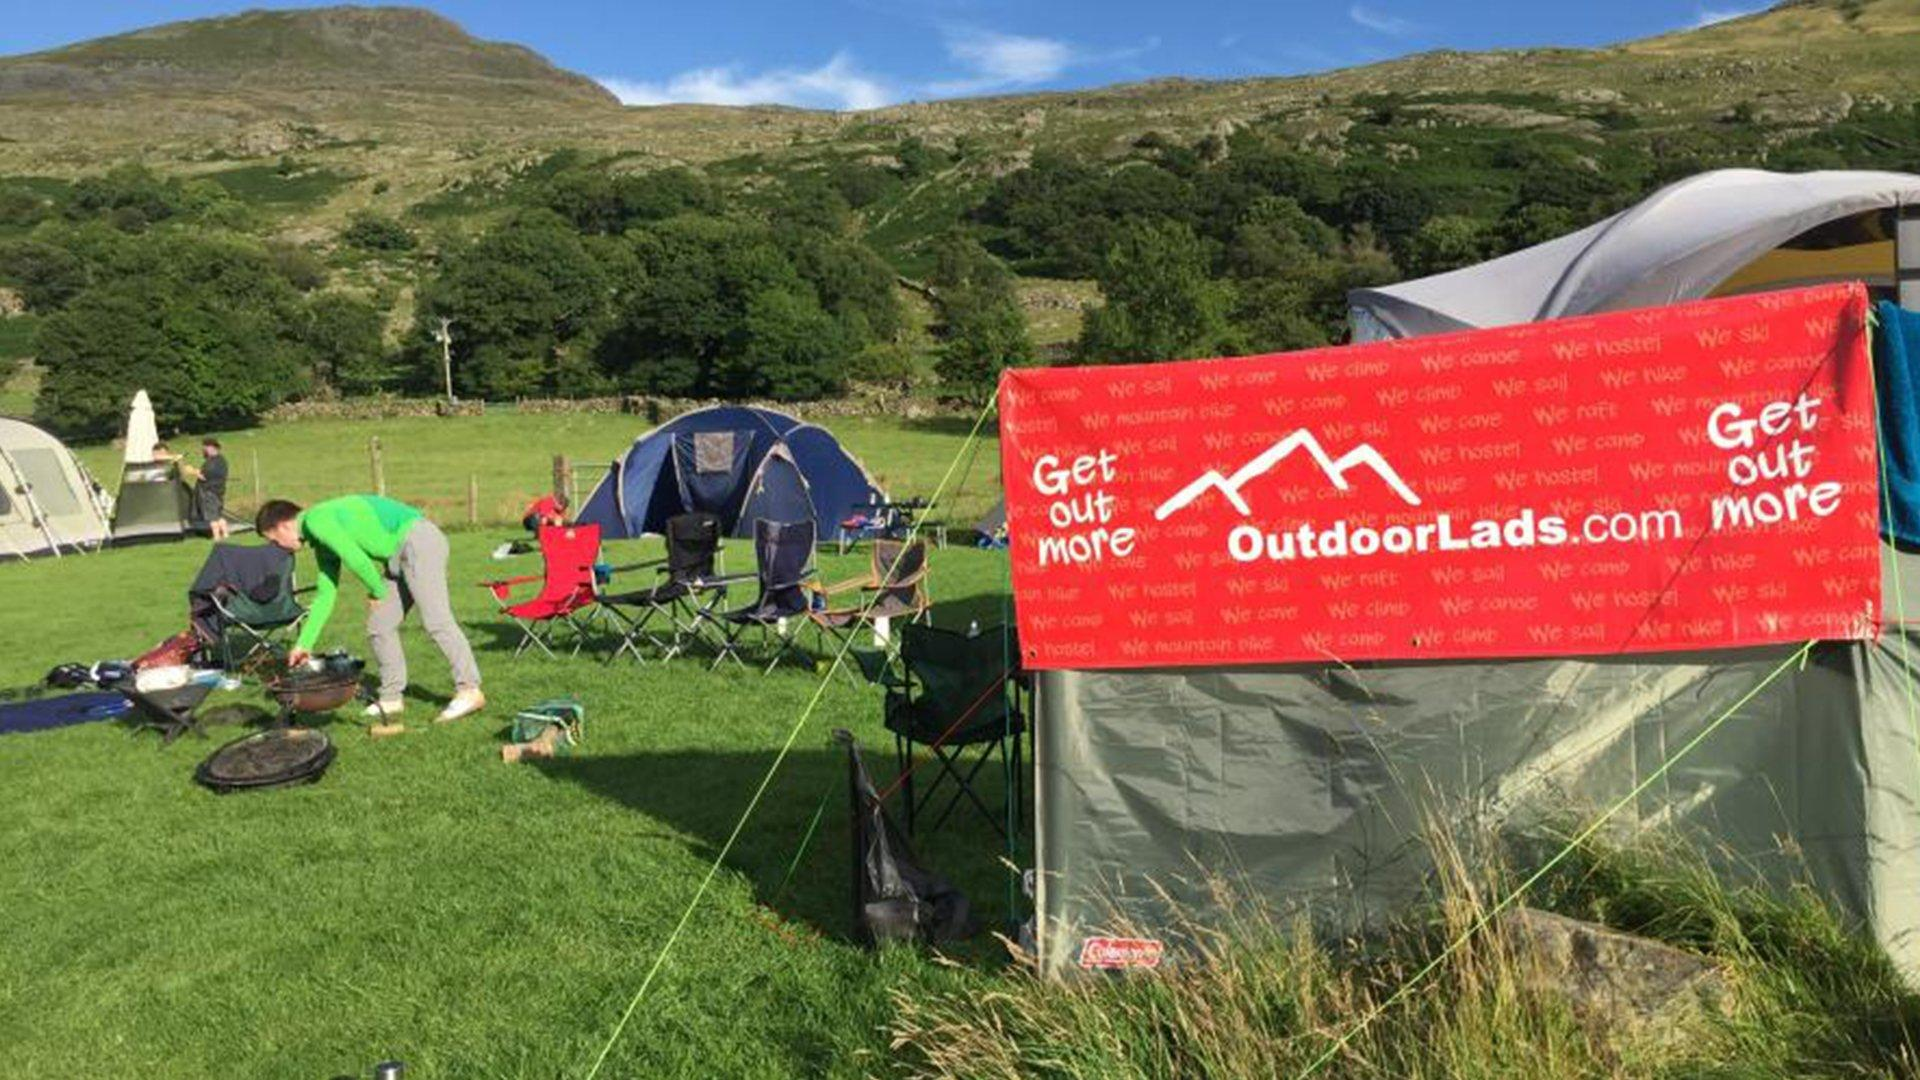 Outdoor Lads charity during a weekend of camping in the UK